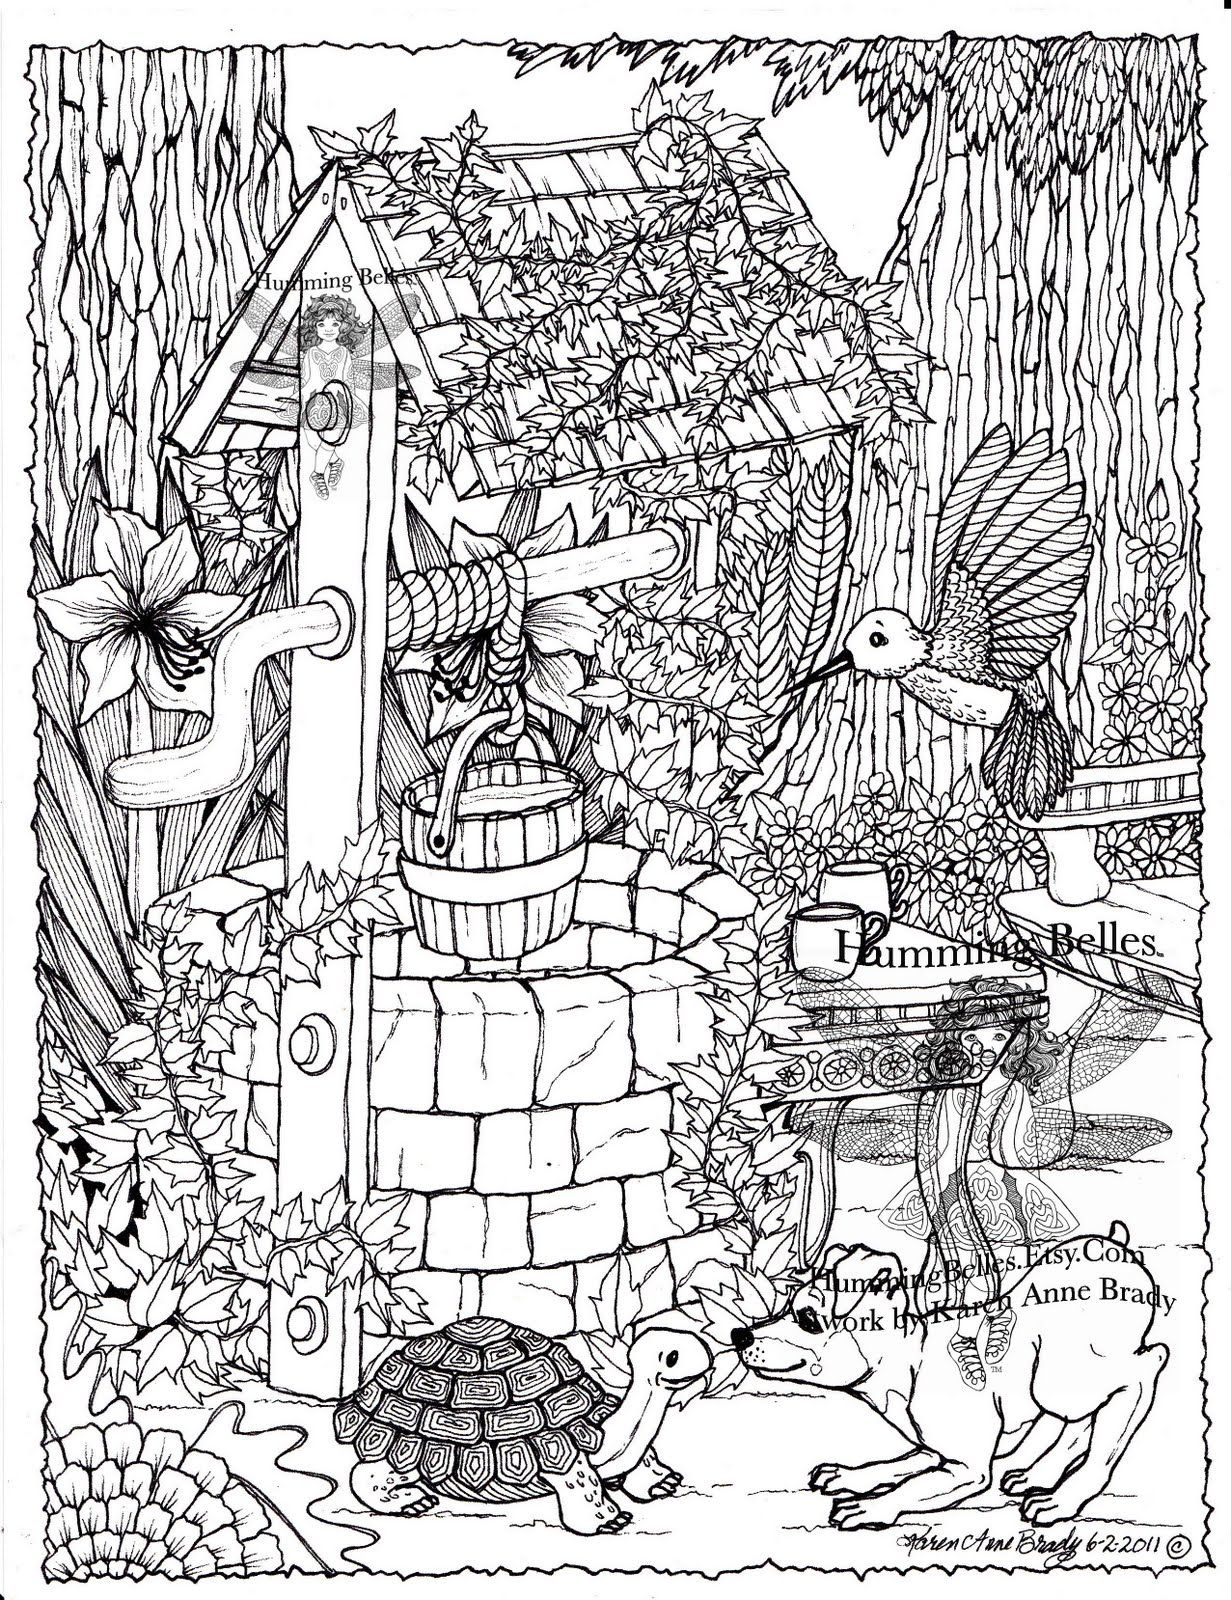 Humming Belles Coloring Pages Belle Coloring Pages Coloring Pages Abc Coloring Pages